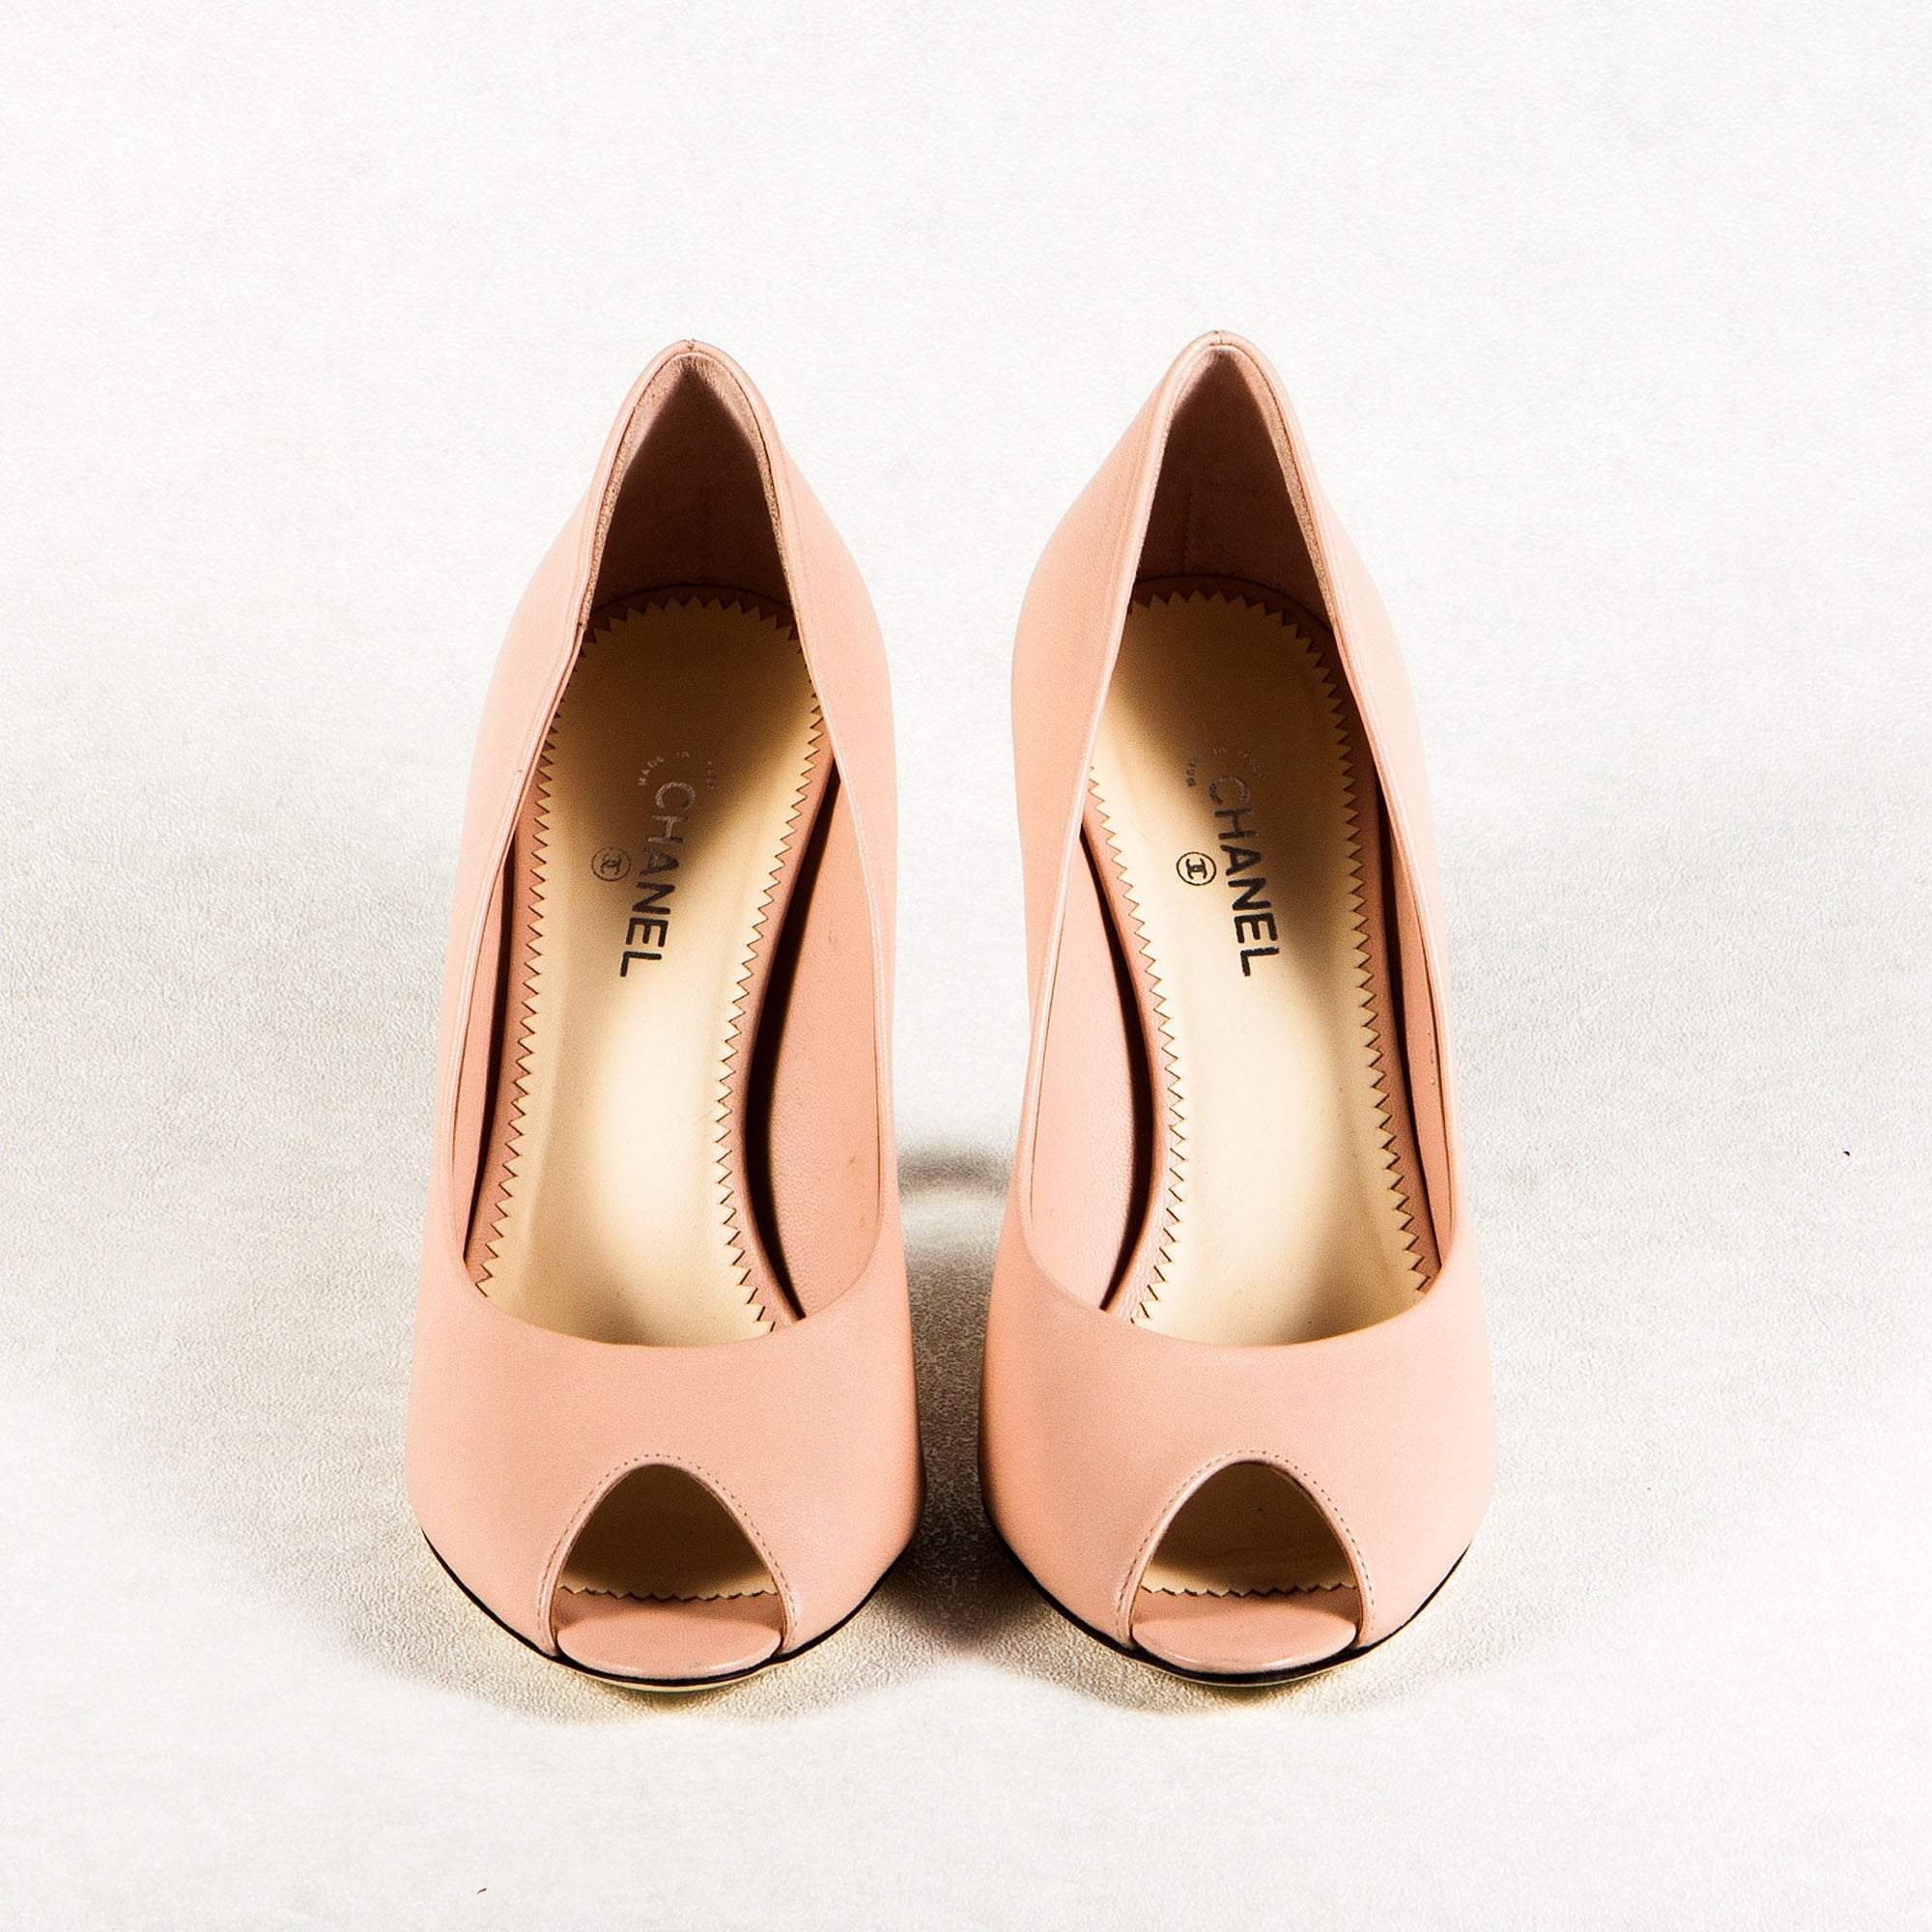 Chanel Peep Toe Pumps